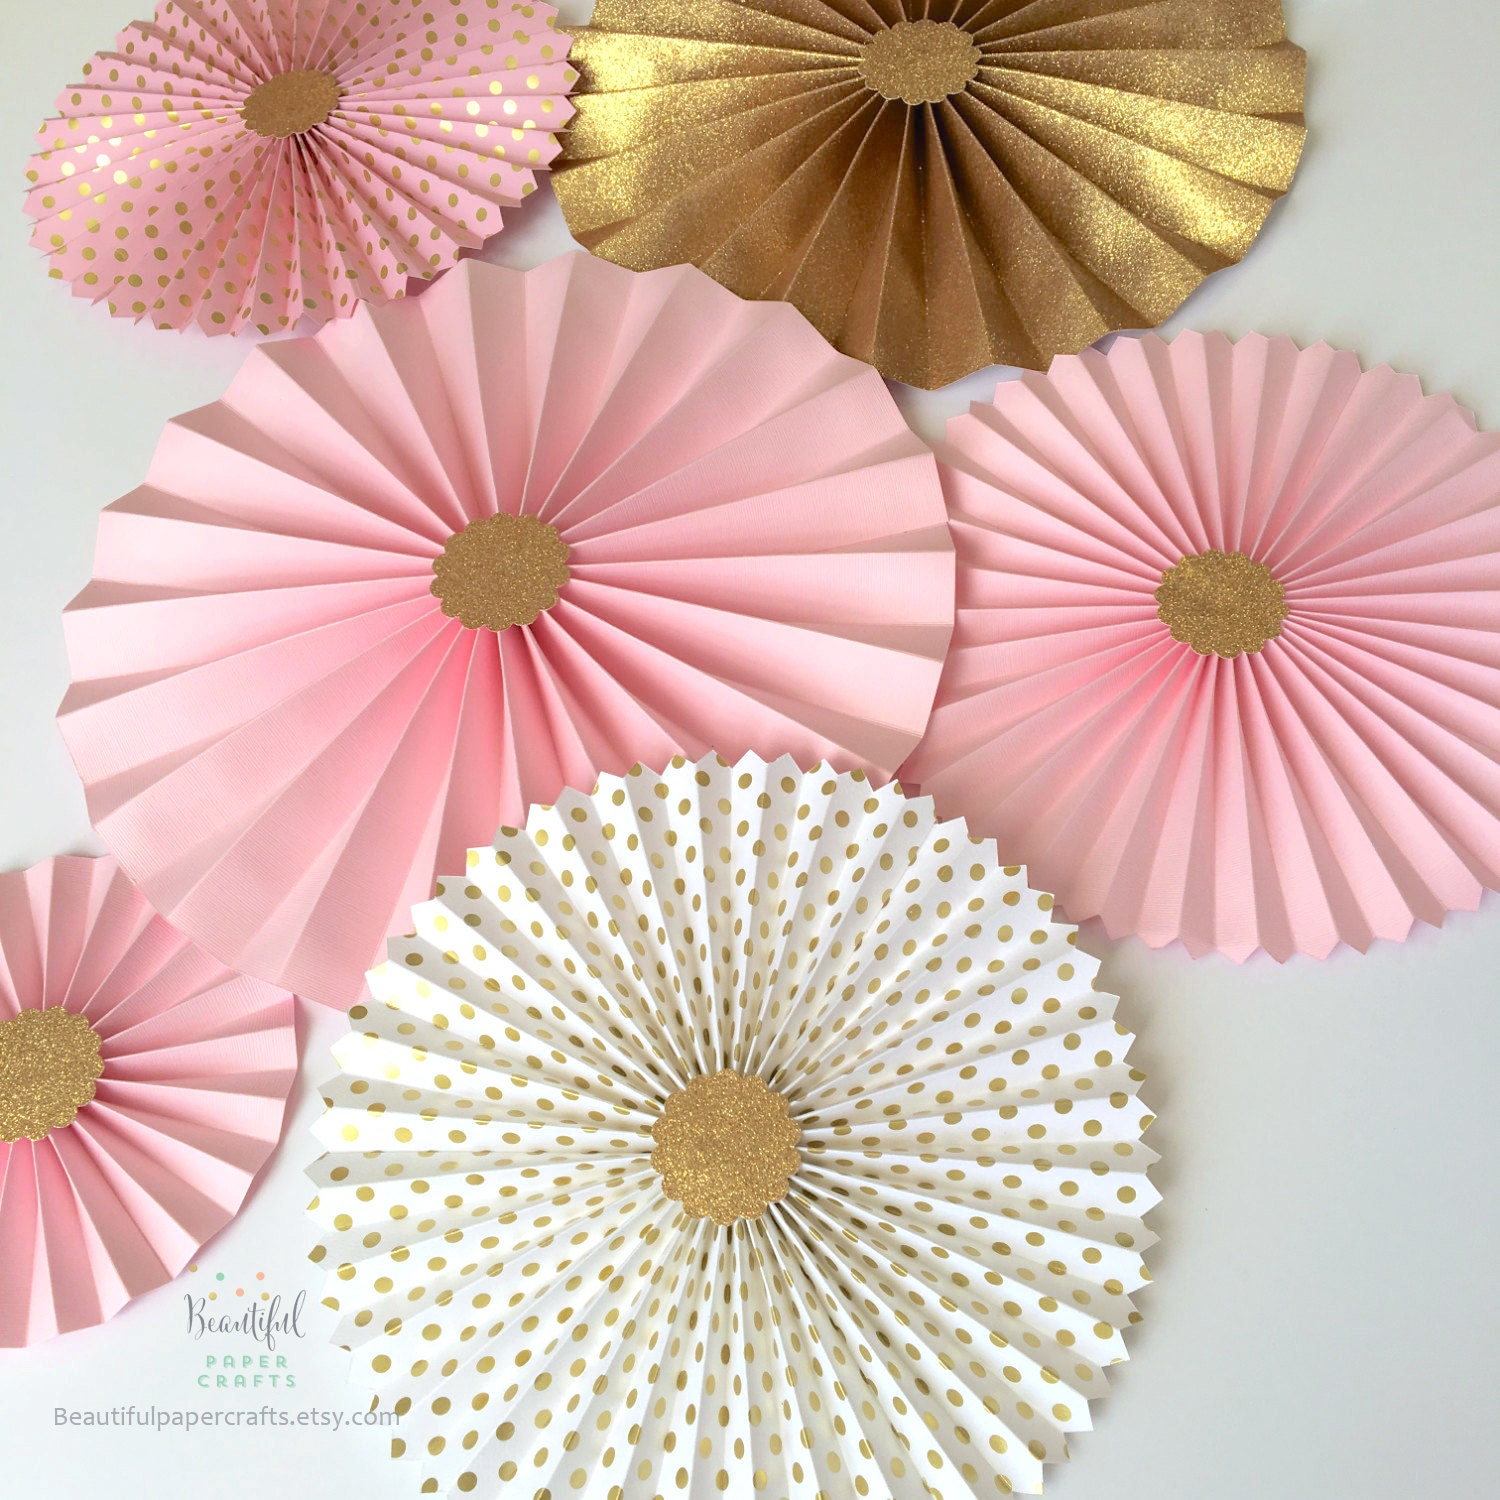 Pink And Gold Glitter Paper Fan Backdrop Pink And Gold. Birthday Banner Design. Ferkauf Graduate School Of Psychology. Free Printable Scrapbook Templates. Footer Html Css Template. Free Expenses Report Template. Free Business Plan Template. Graduation Cap Ideas For Teachers. Graduation Letter To Friend